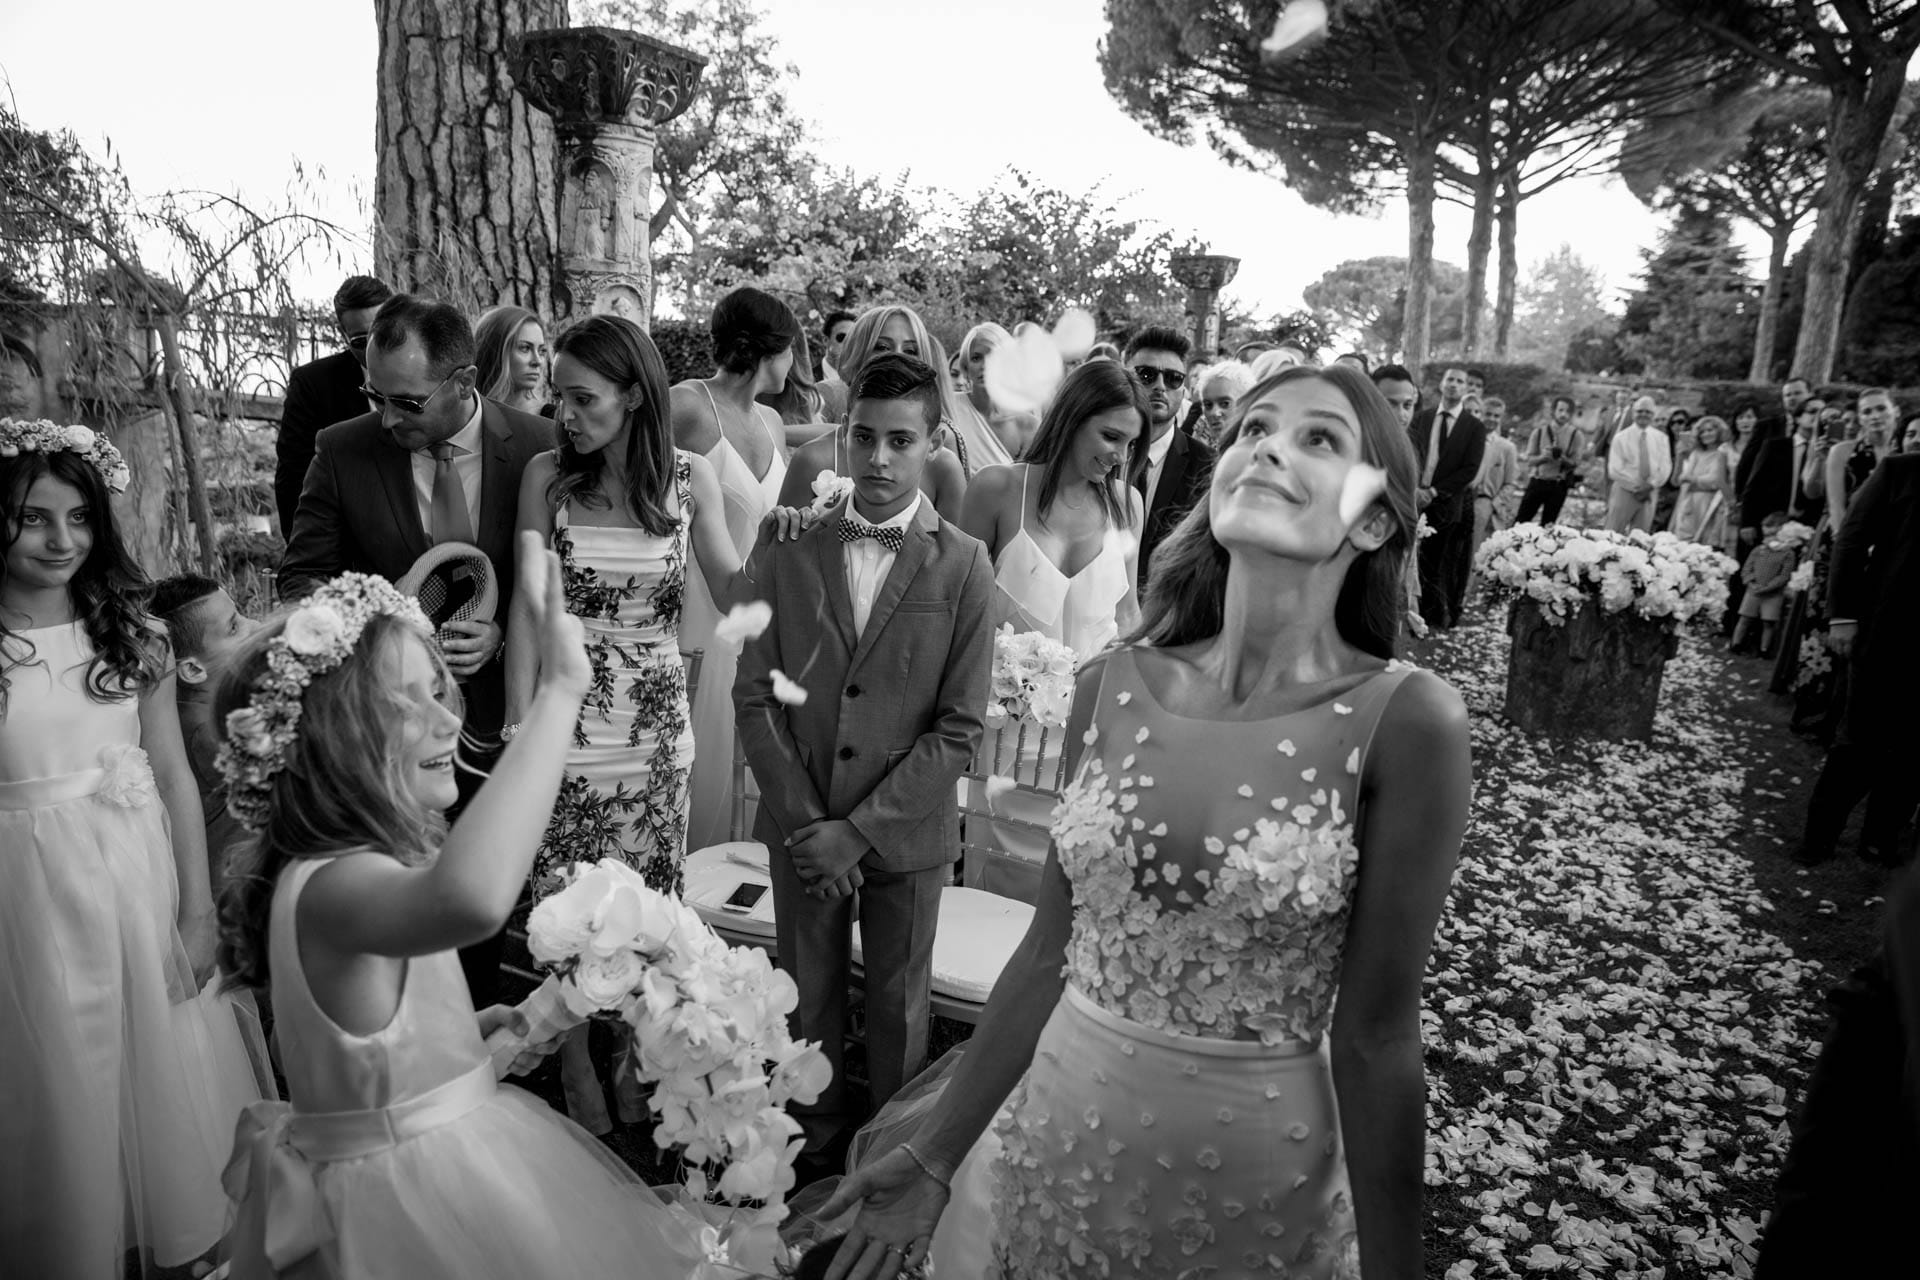 capri italy wedding